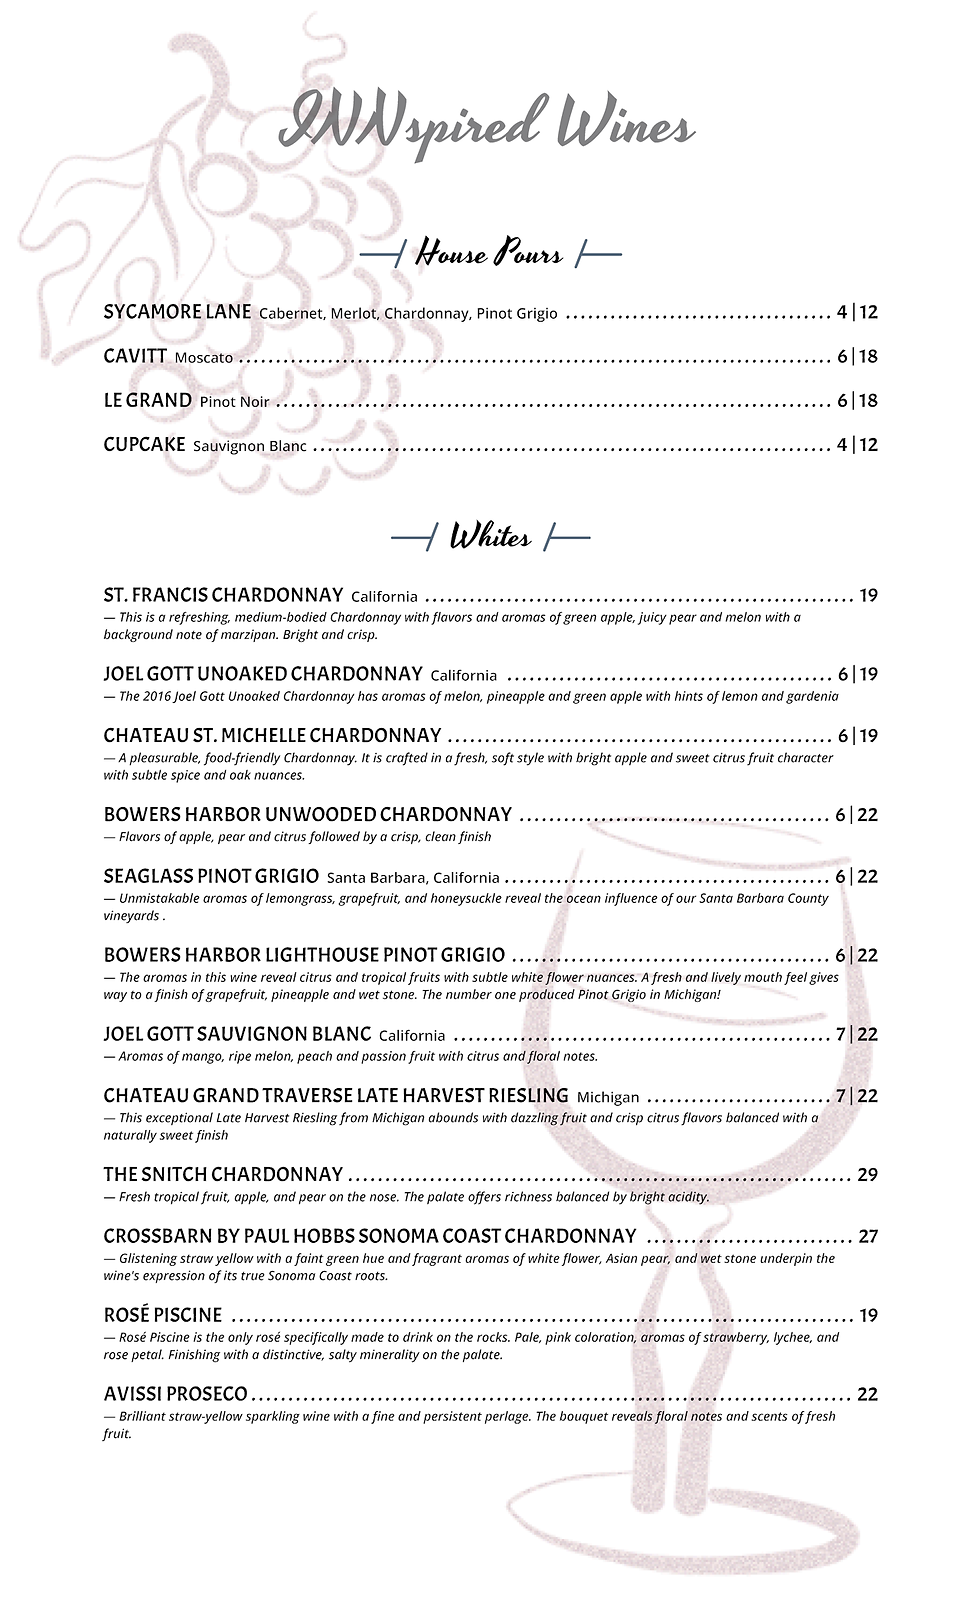 ITW Wine List 11-19-19_Page_1.png